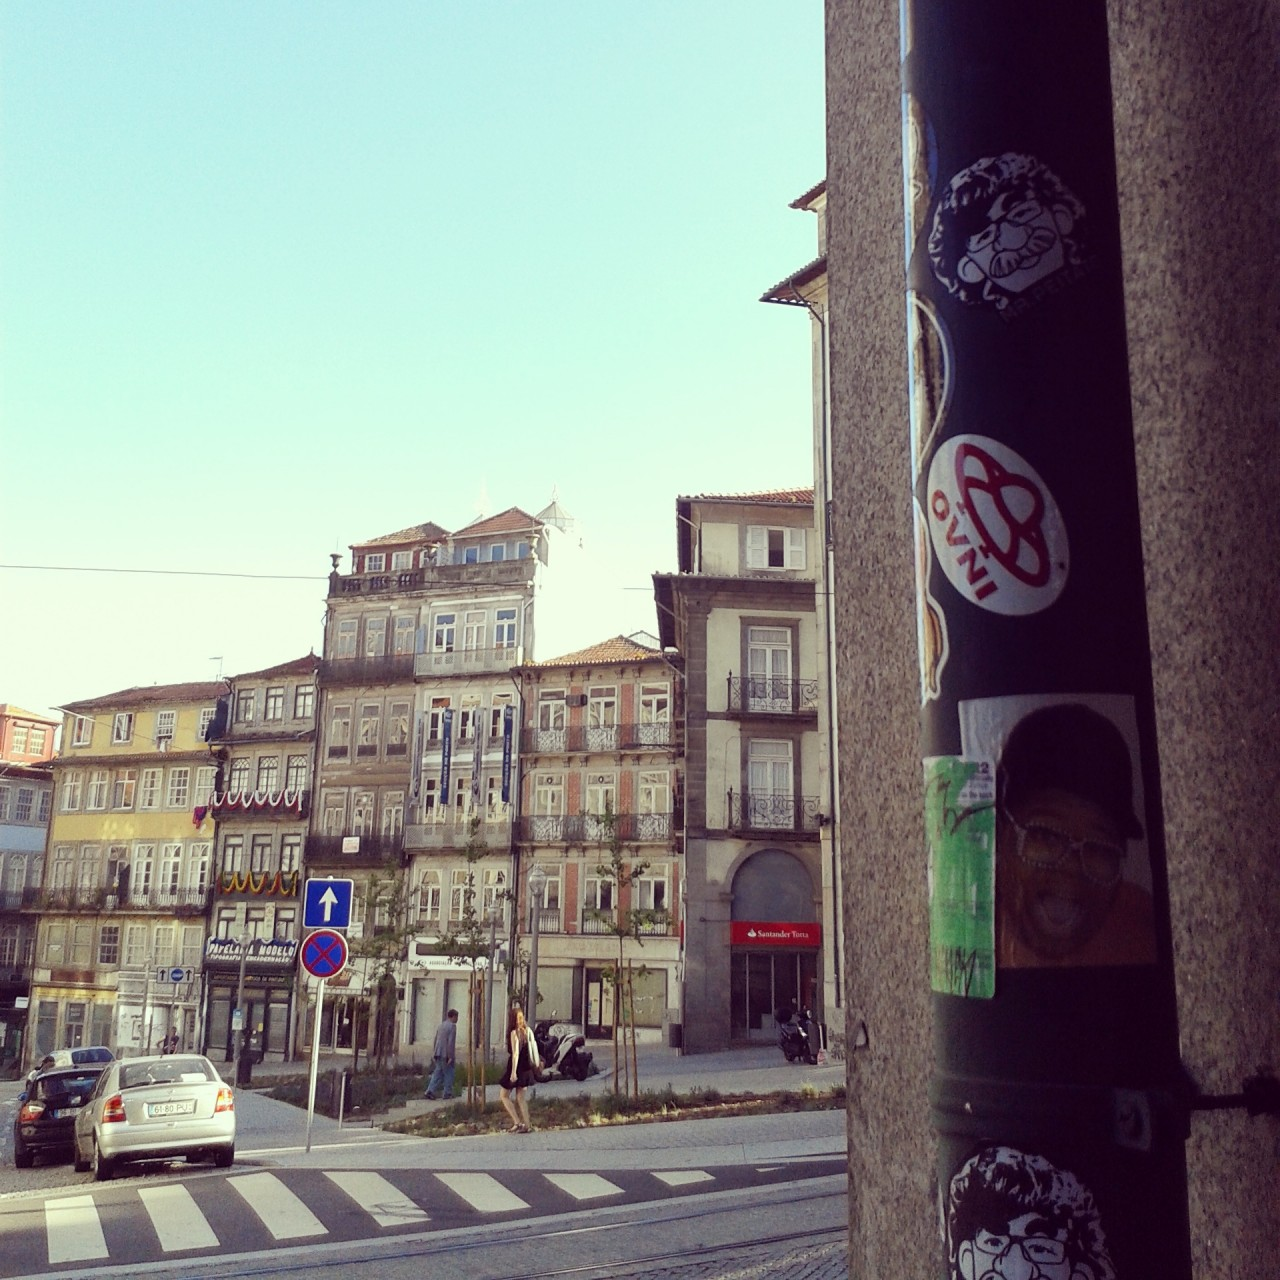 Peipegata sticker slap stickerart  bombardeando Porto-Portugal